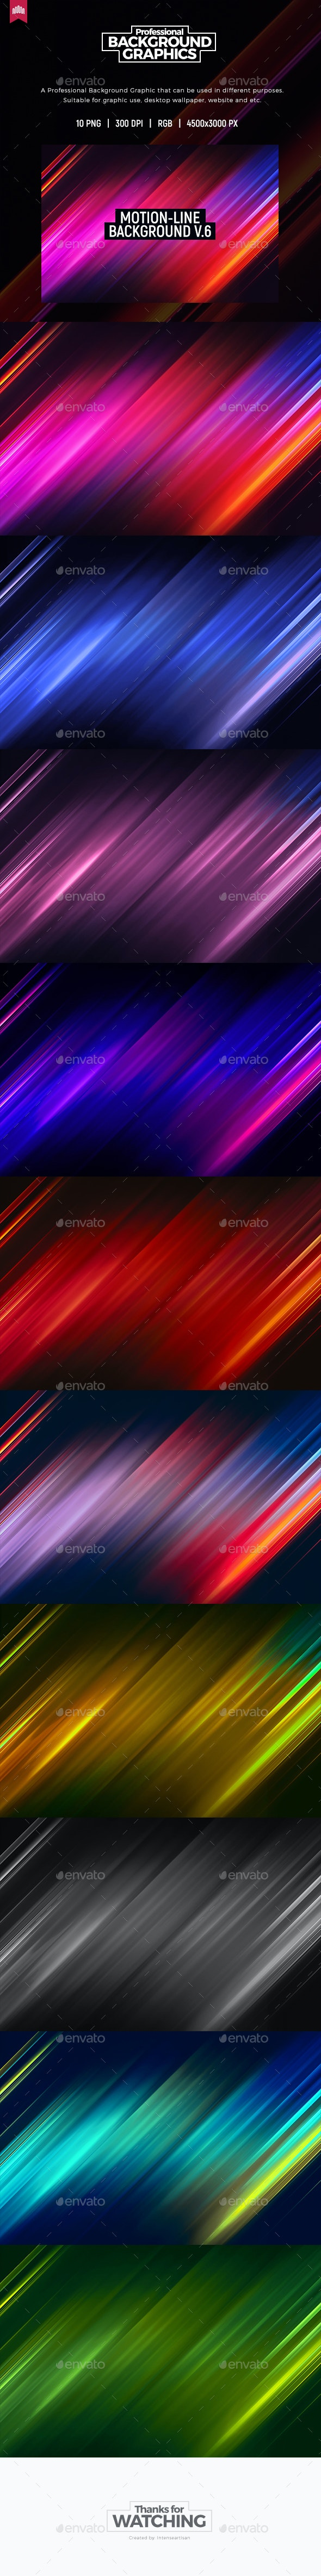 Motion Line - Background V.6 - Abstract Backgrounds